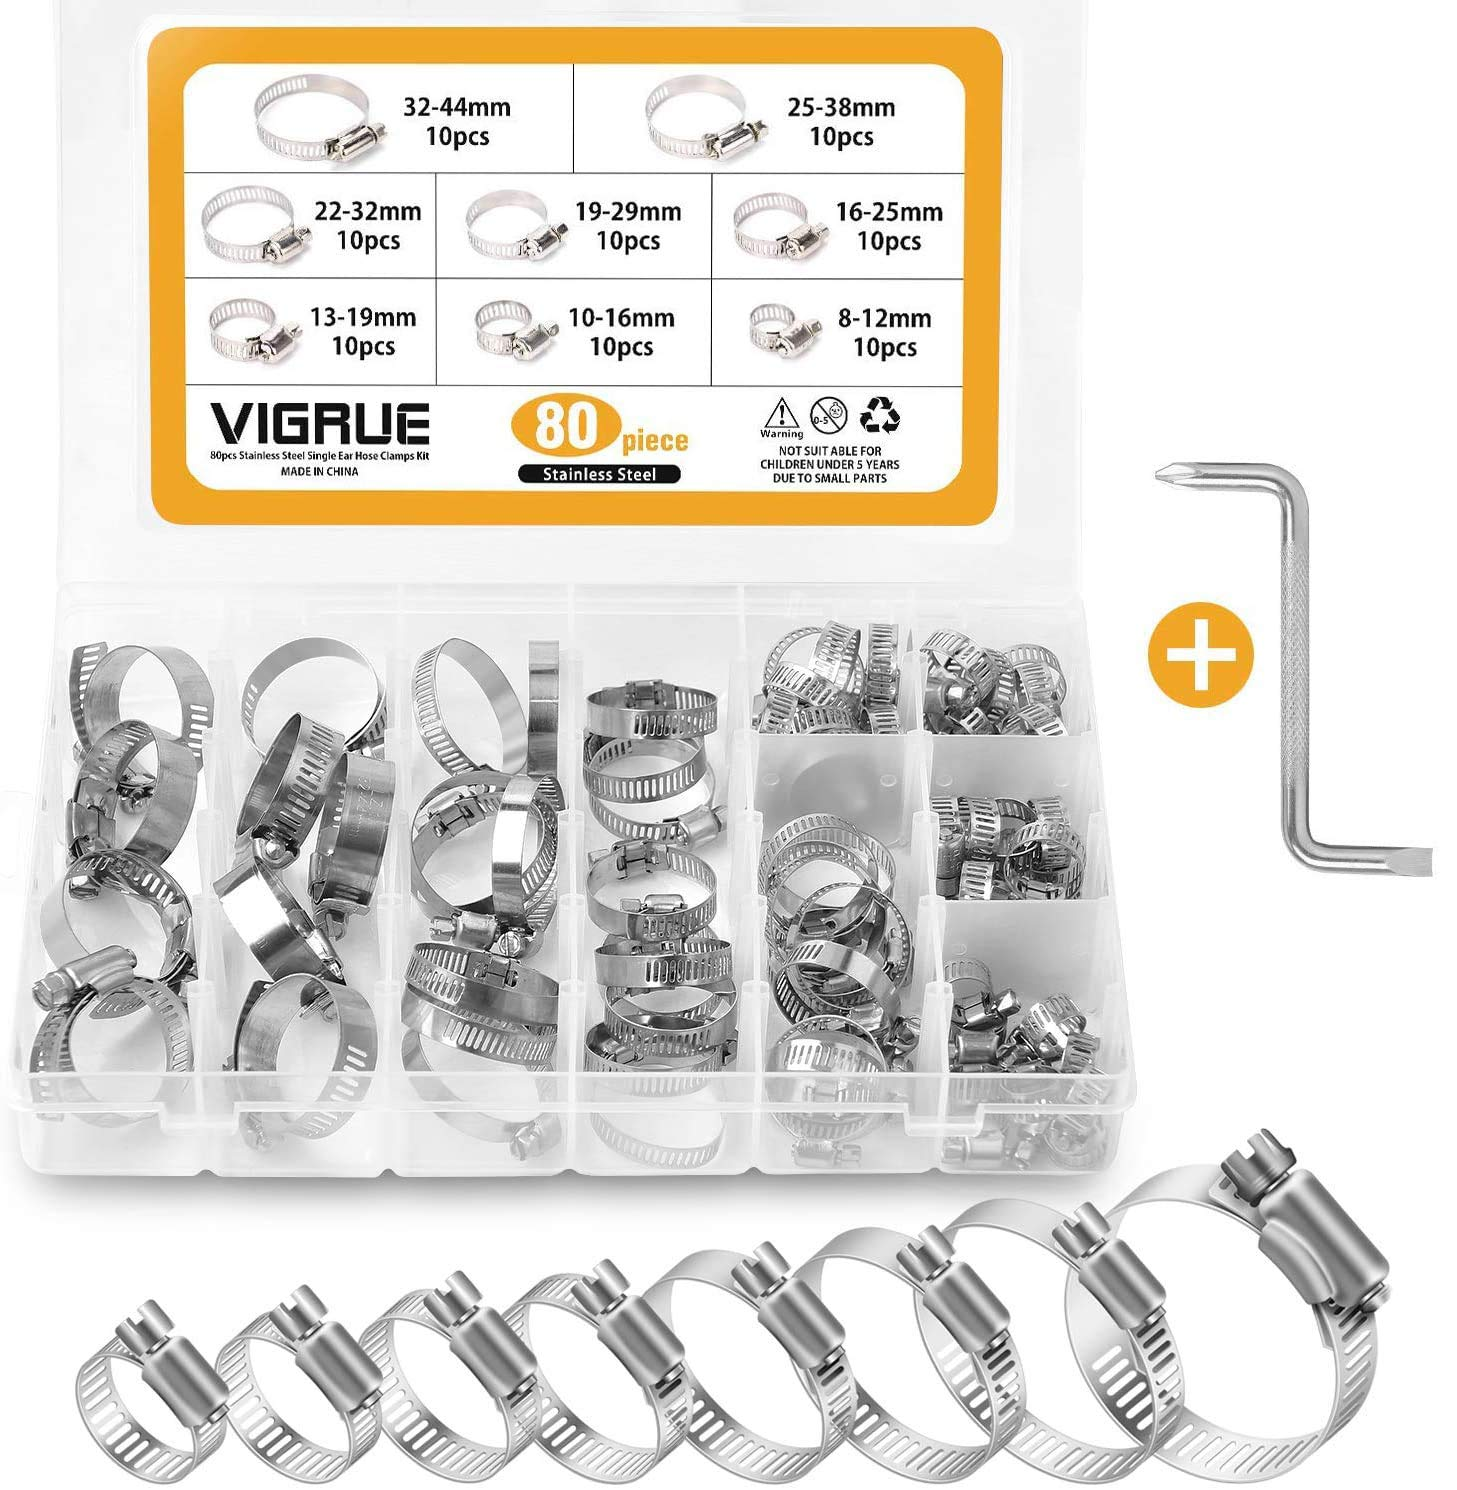 Amazon Com Vigrue Hose Clamps Assortment 100 304 Stainless Steel Adjustable Worm Gear Hose Clamps 80pieces With Wrench Fuel Line Clamp For Plumbing Automotive And Mechanical Applications 8 44mm Range Home Improvement